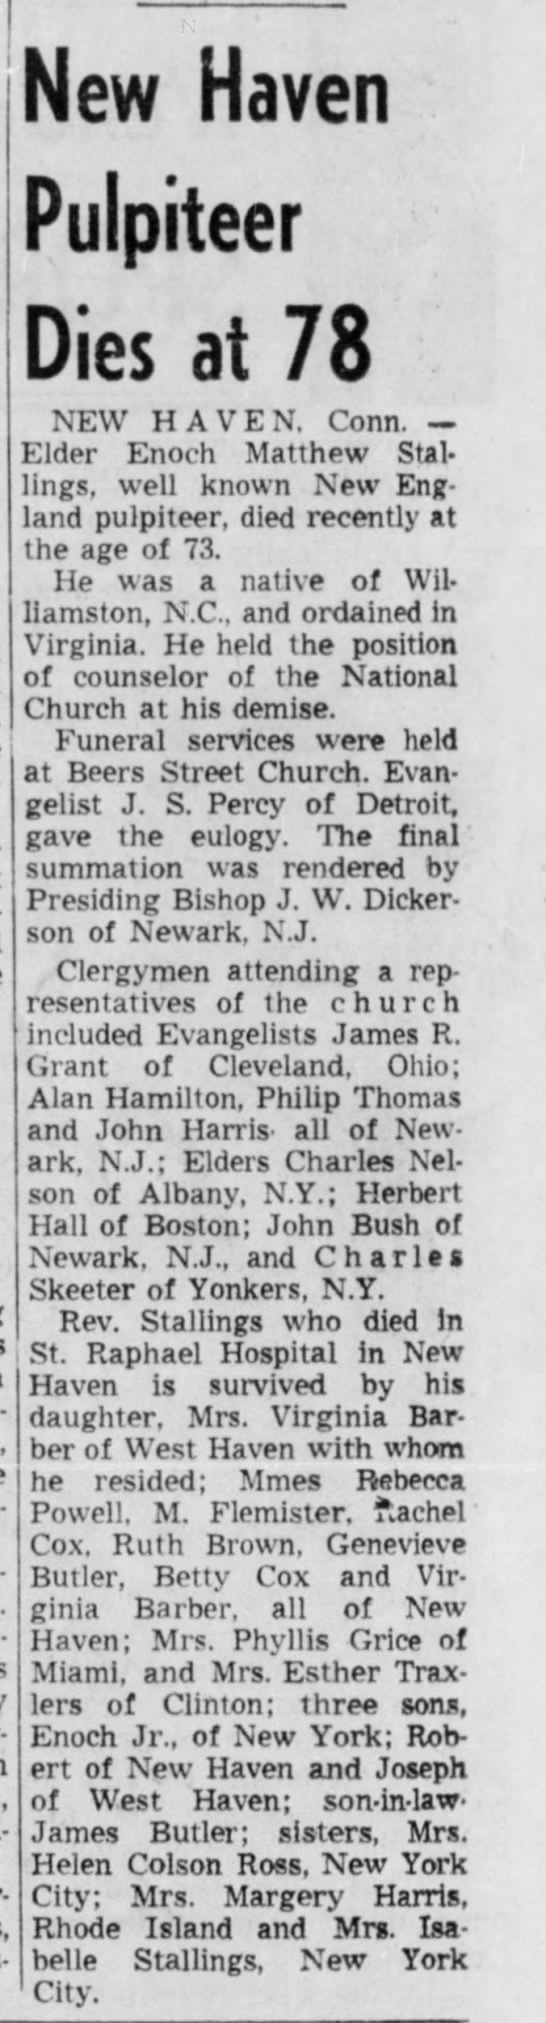 Granddad's newspaper notice of death The Pittsburgh Courier 7 August 1965